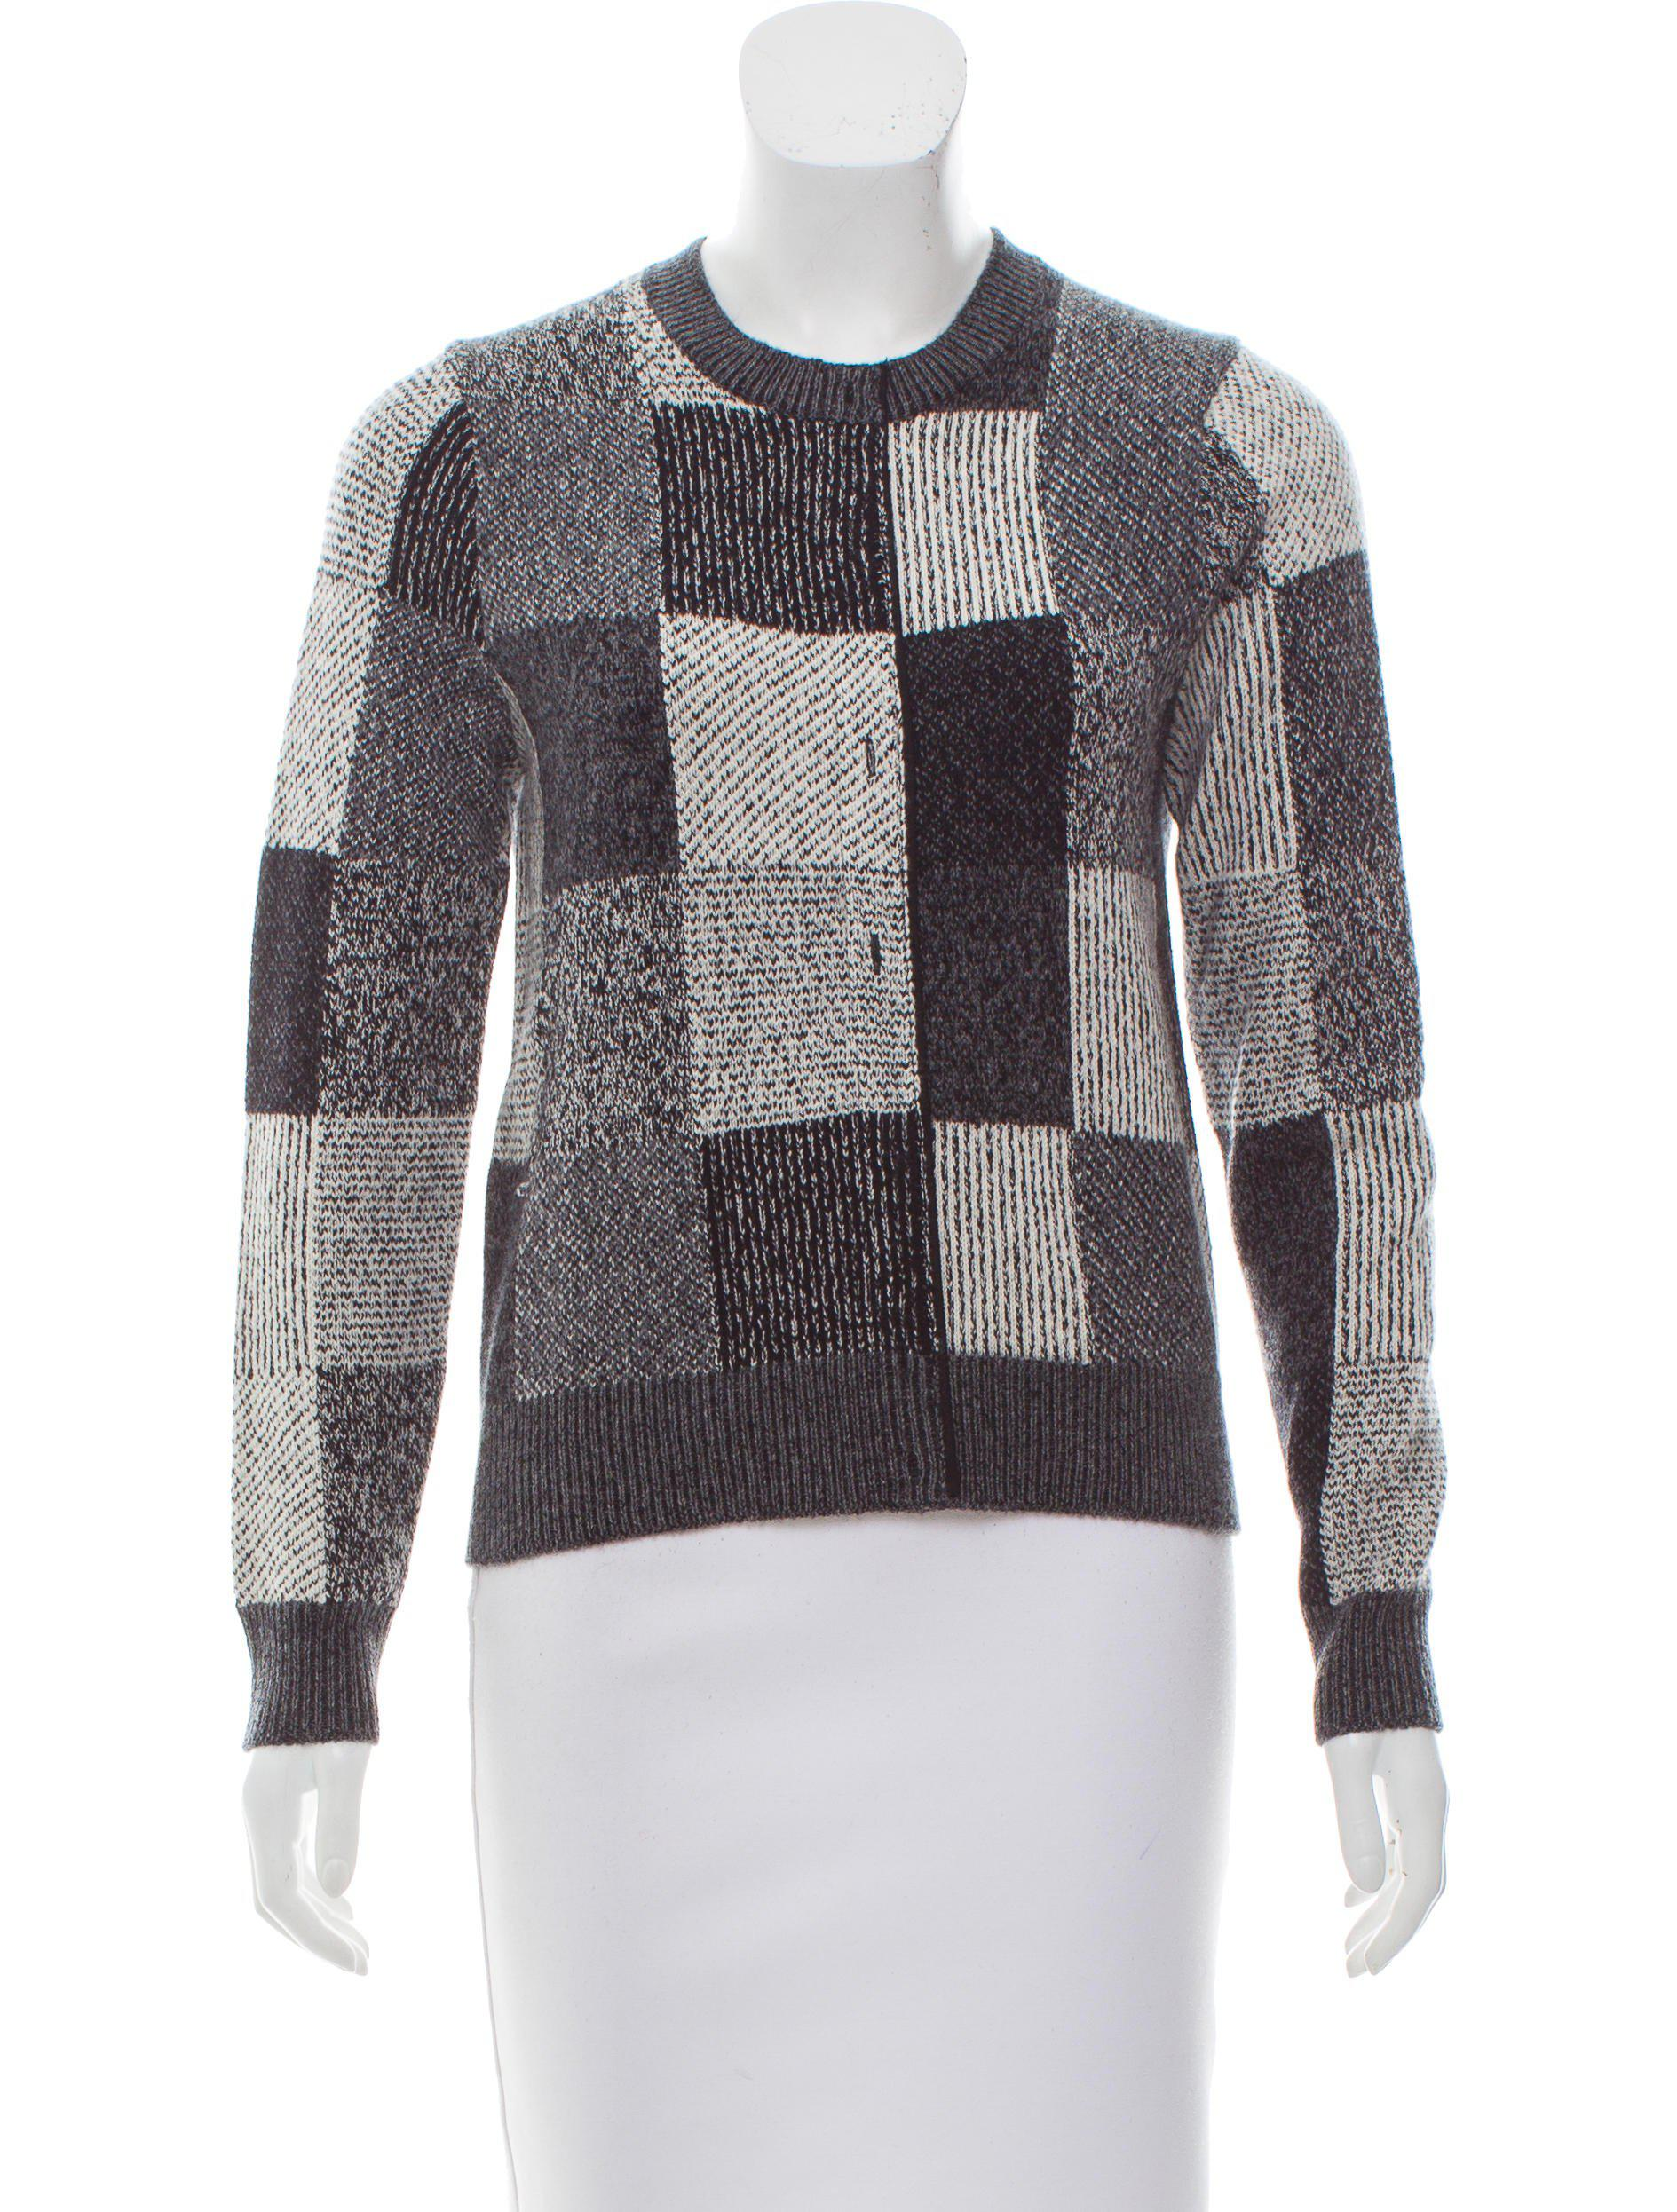 Marc jacobs Patterned Cashmere Sweater in Black | Lyst